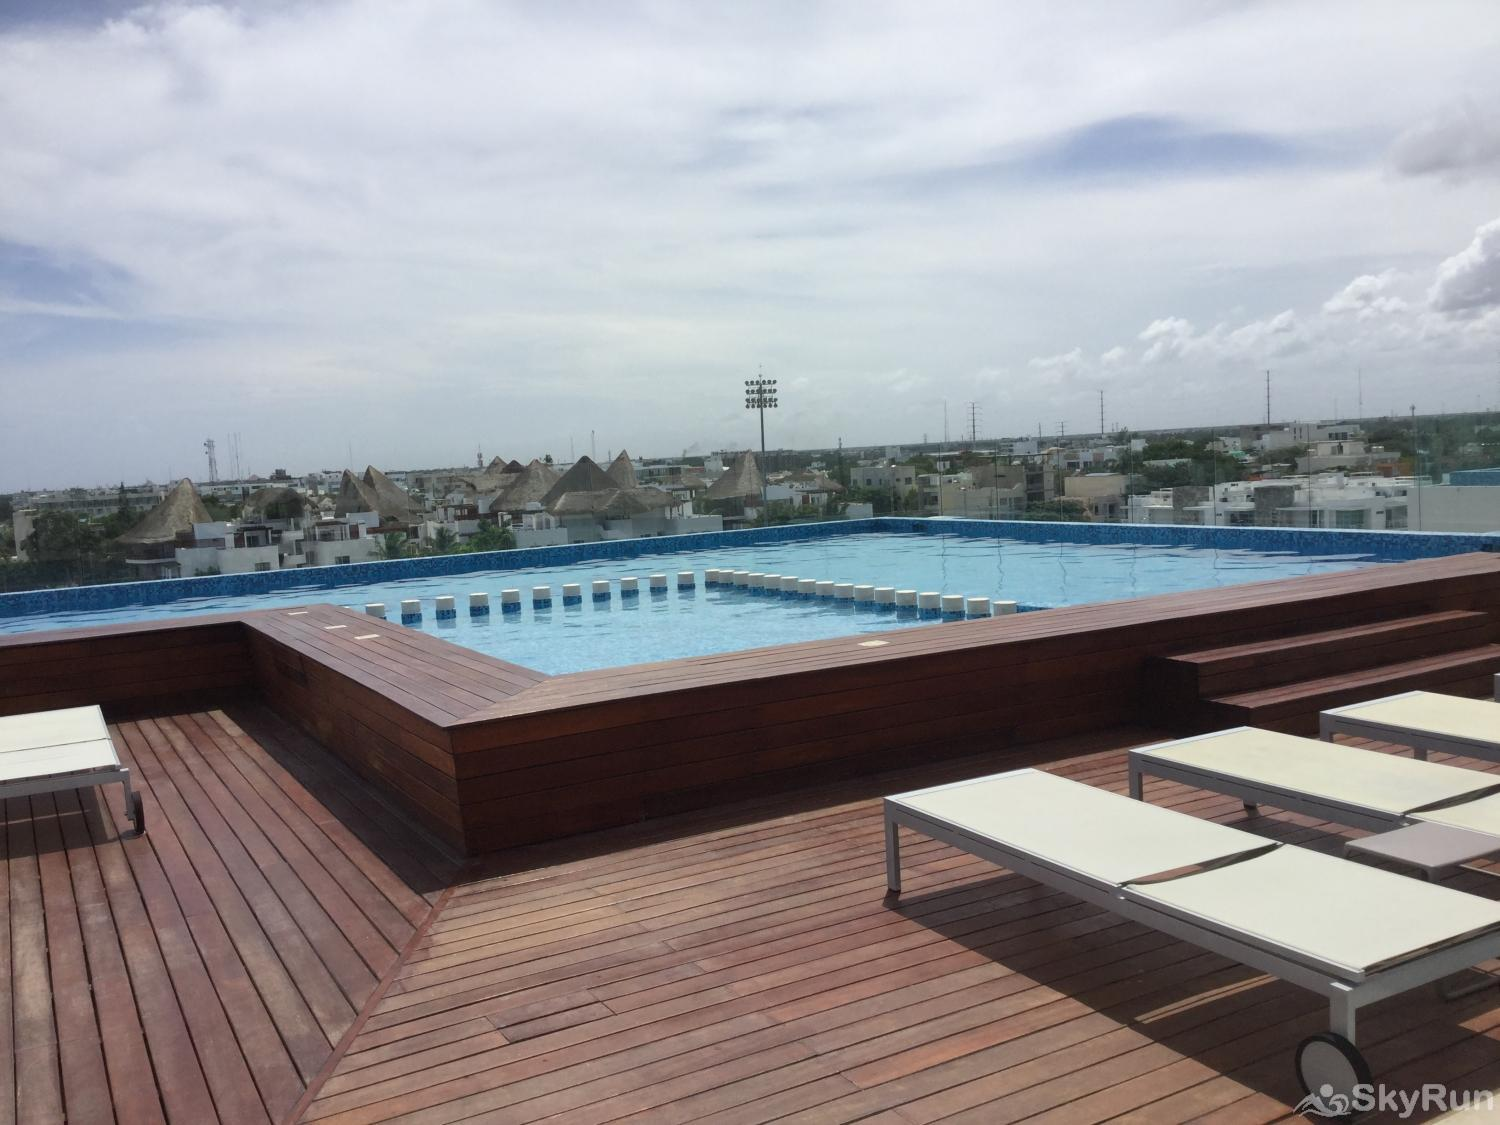 LUXURY RESIDENCE w Panoramic view 1BR 5star hotel amenities Roof top pool area Solea condo Playa Del Carmen